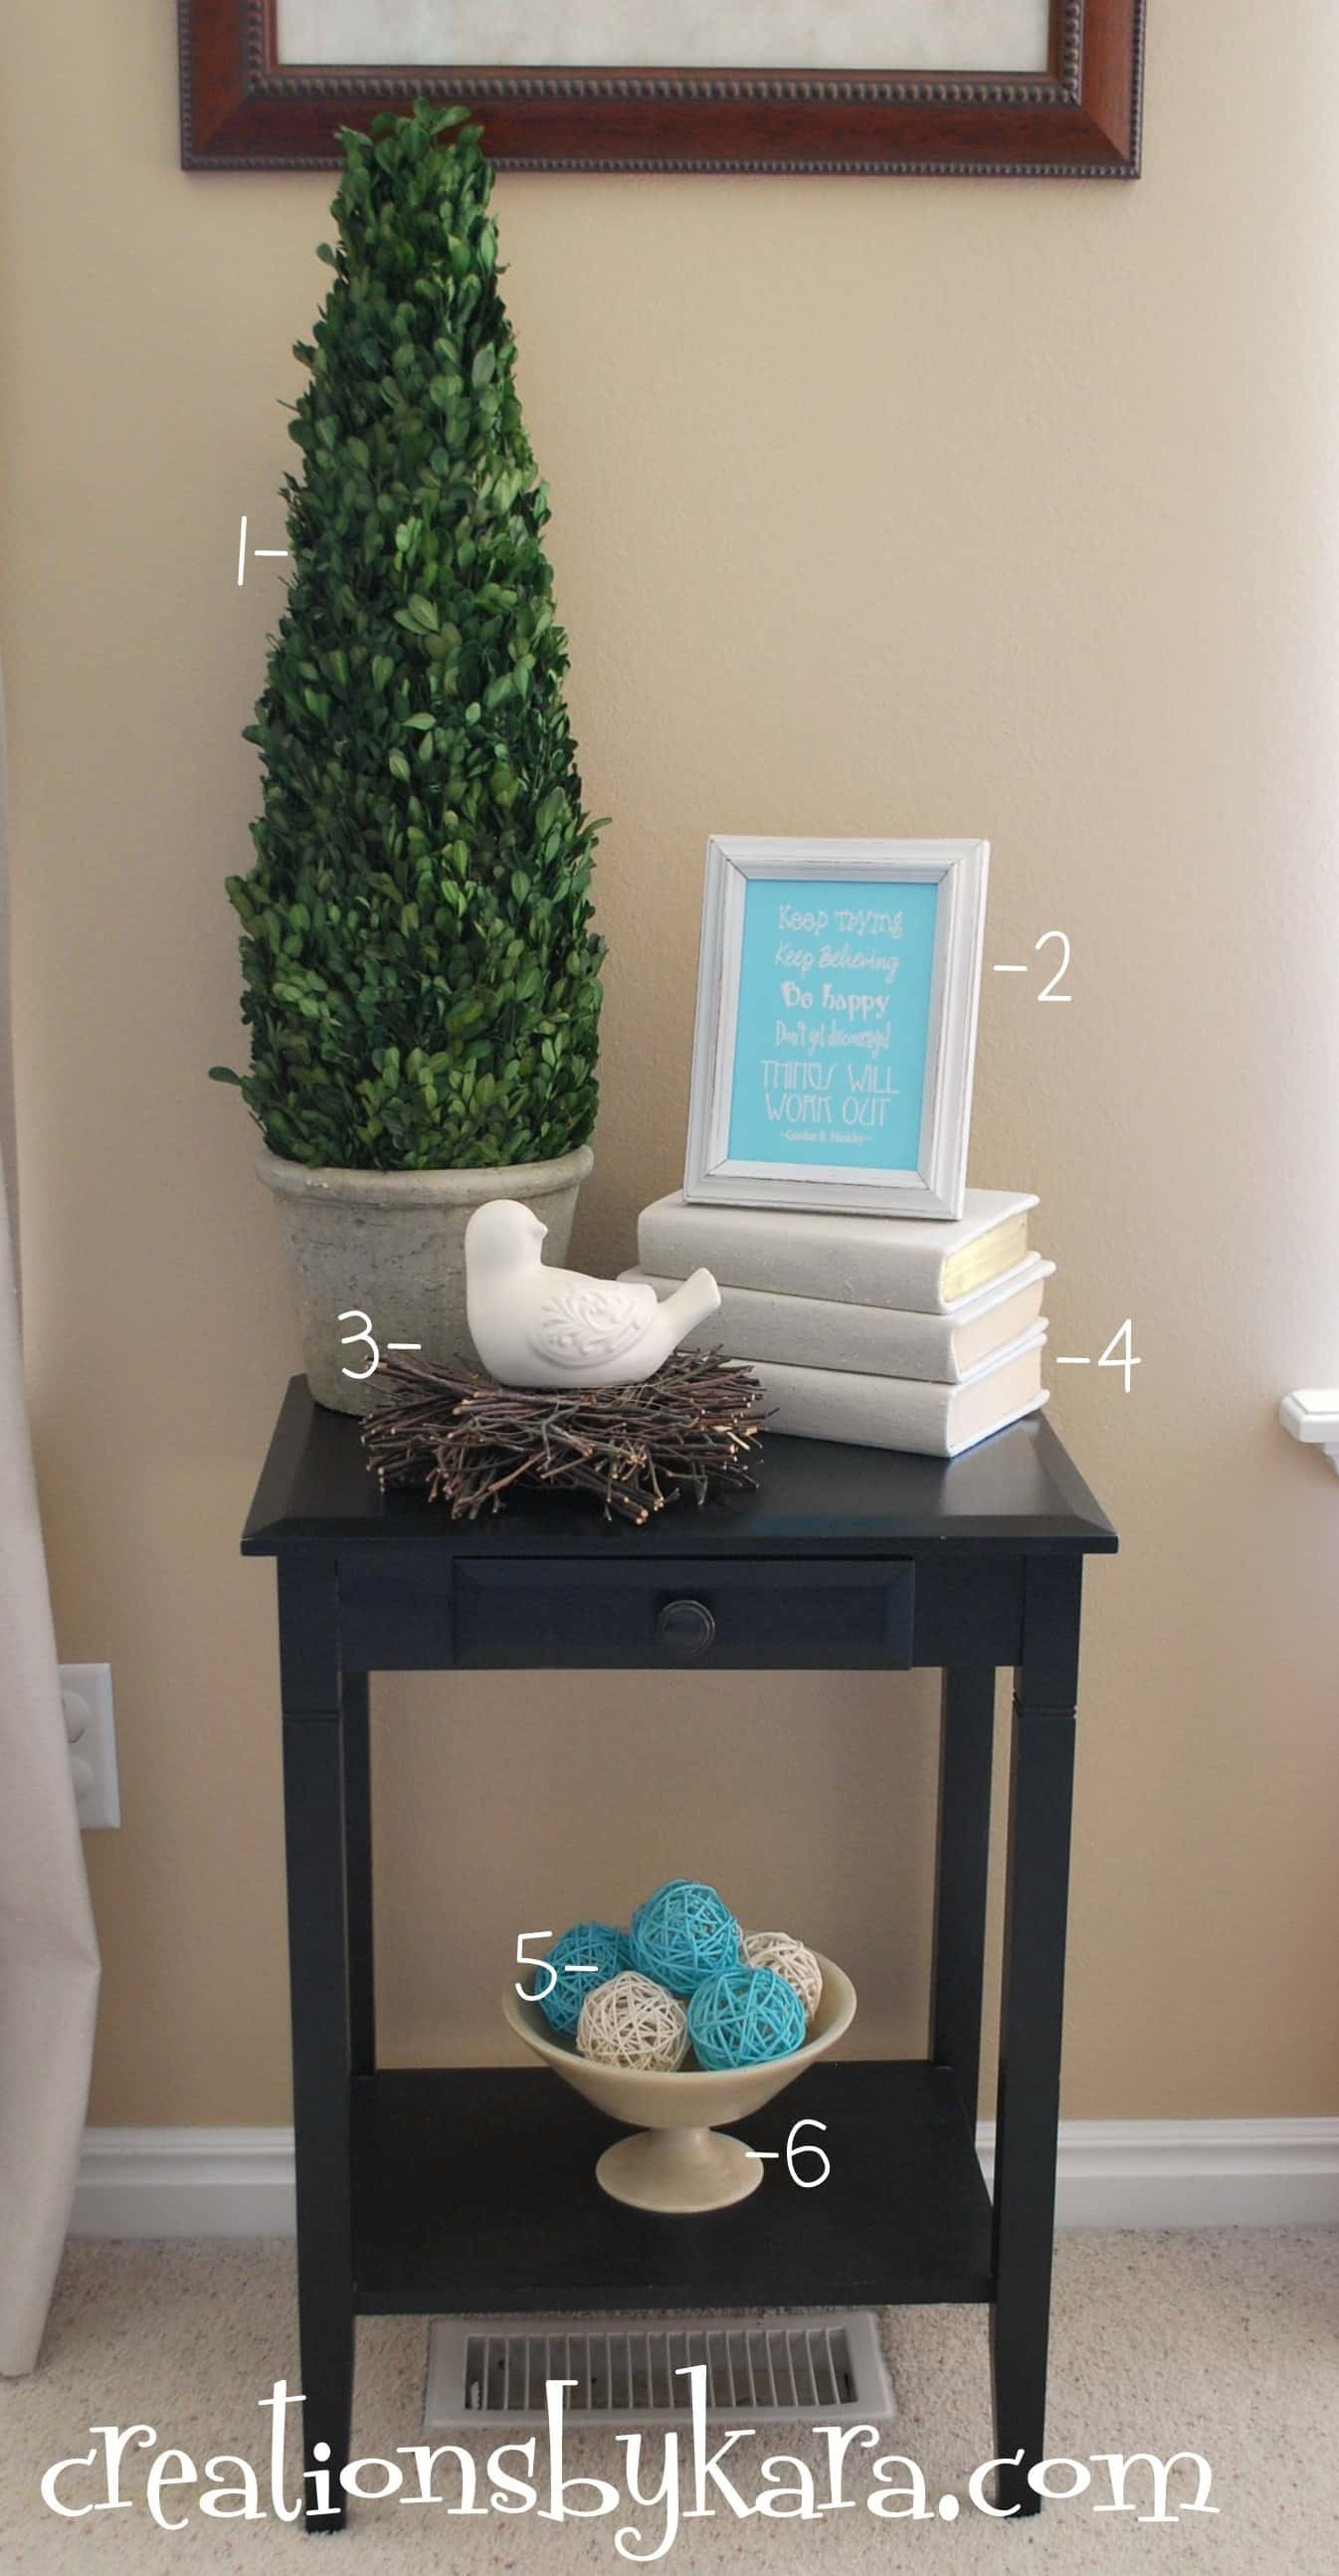 Best ideas about Living Room Decorations DIY . Save or Pin DIY Decorating Living Room Table Creations by Kara Now.